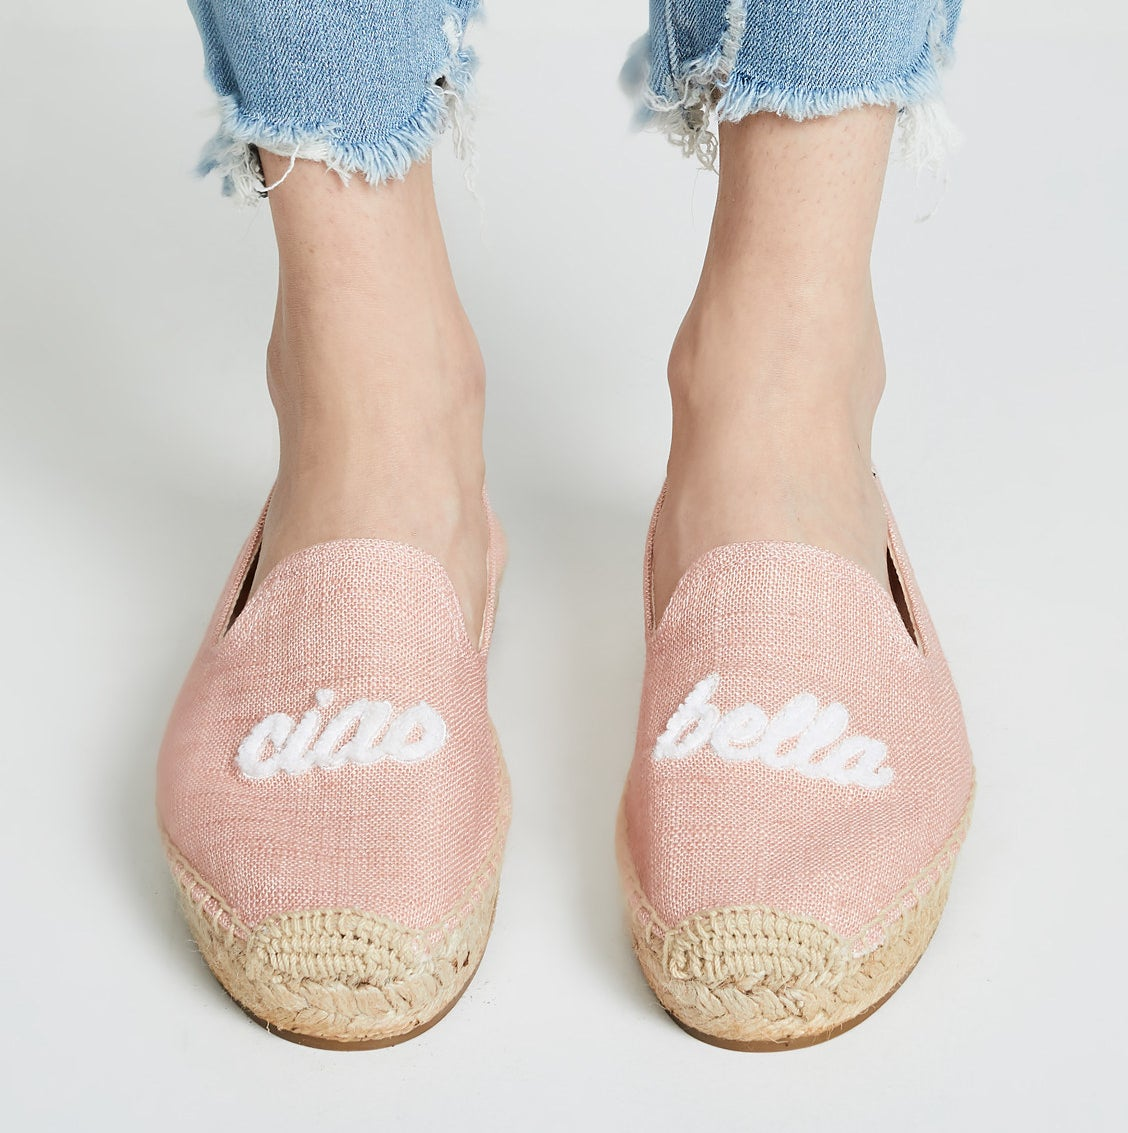 Model wearing pale pink espadrilles with woven bottom and ciao and bella stitched on the front